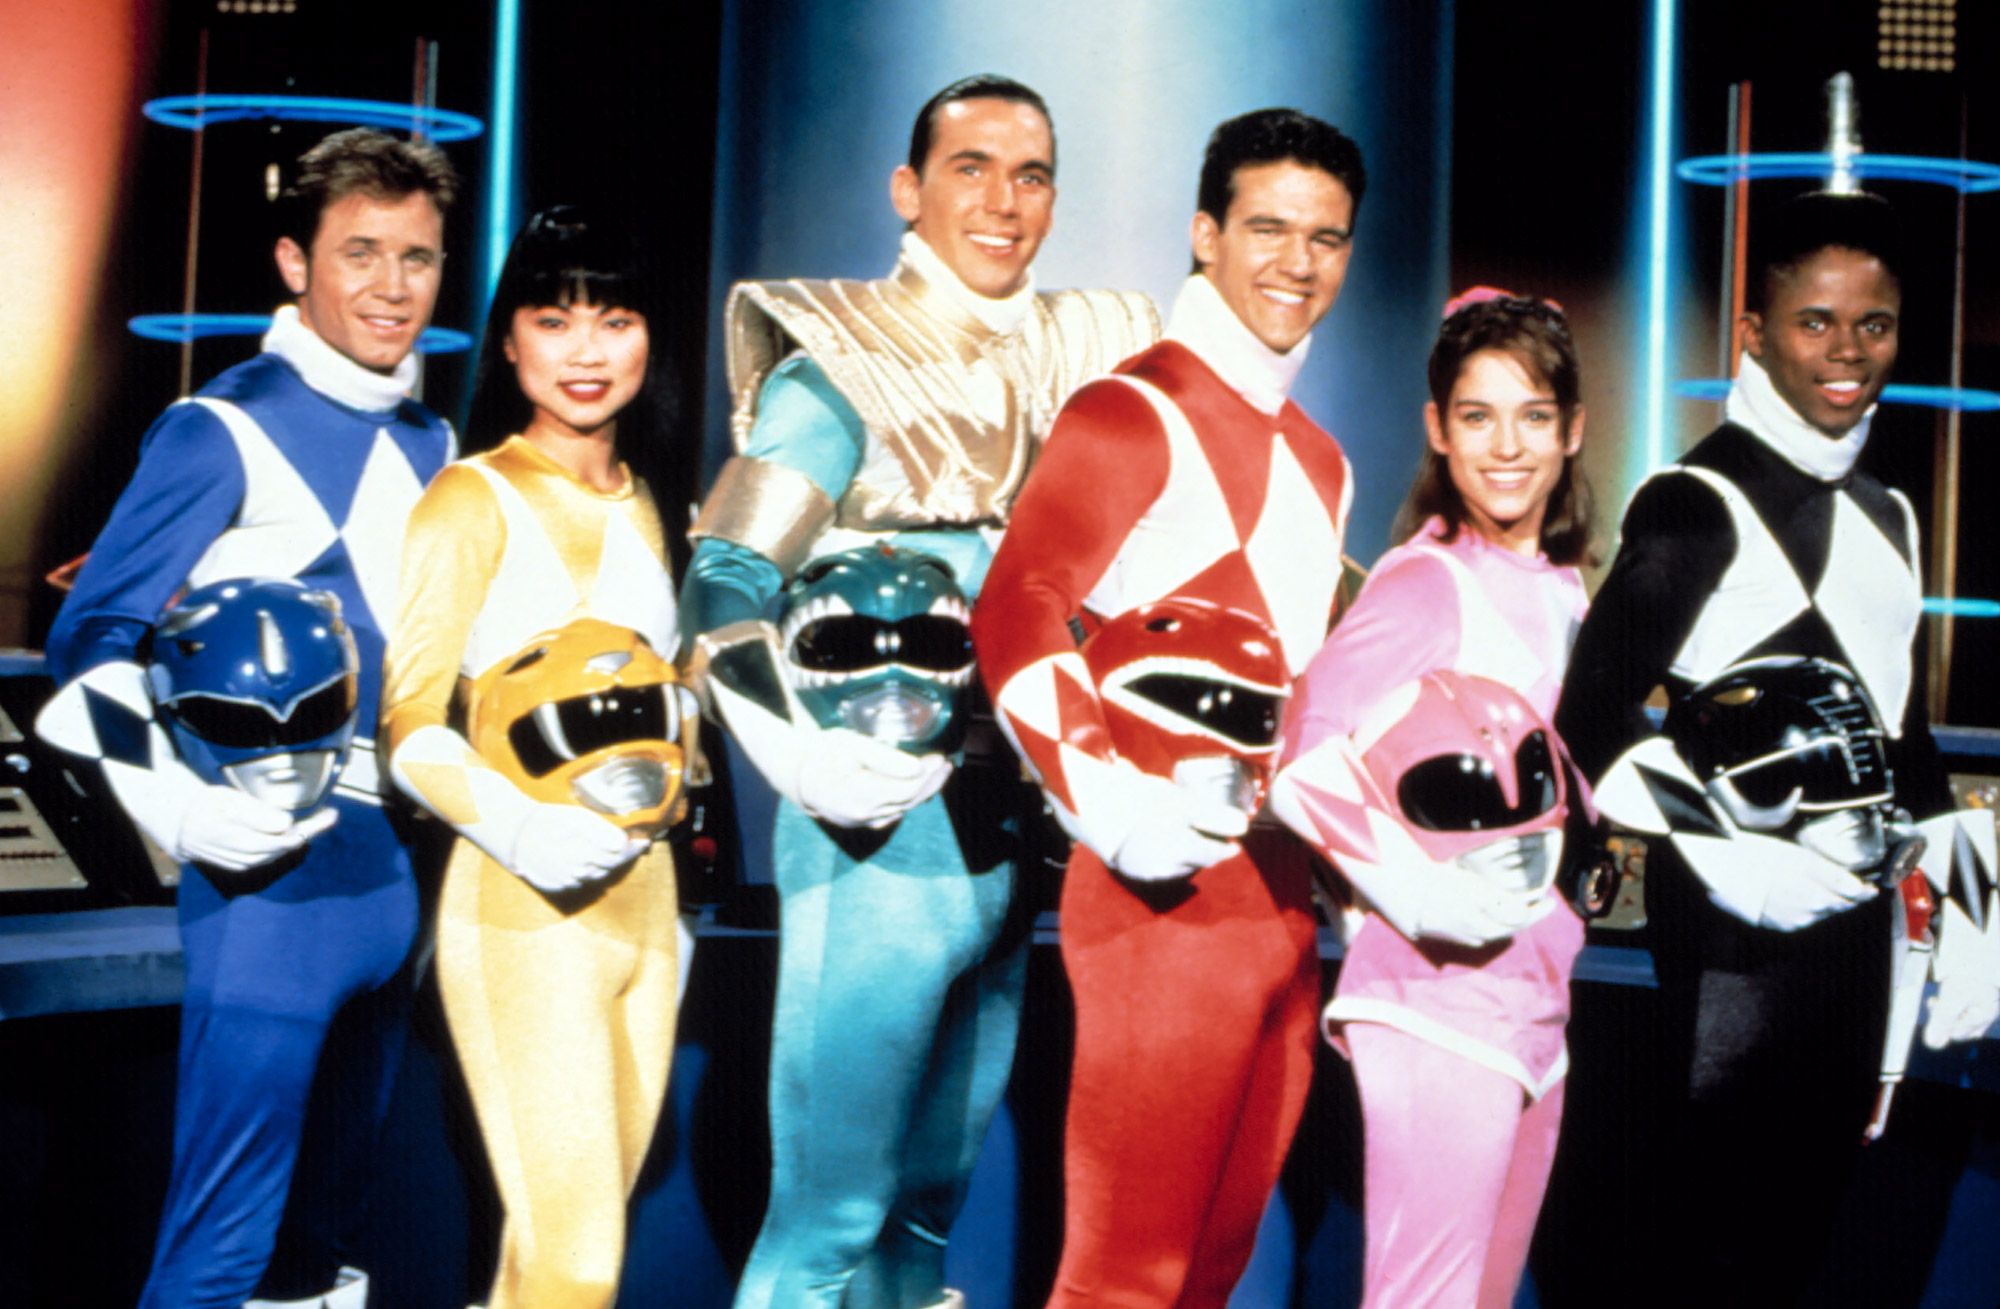 MIGHTY MORPHIN' POWER RANGERS, David Yost, Thuy Trang, Jason David Frank, Austin St. John, Amy Jo Jo